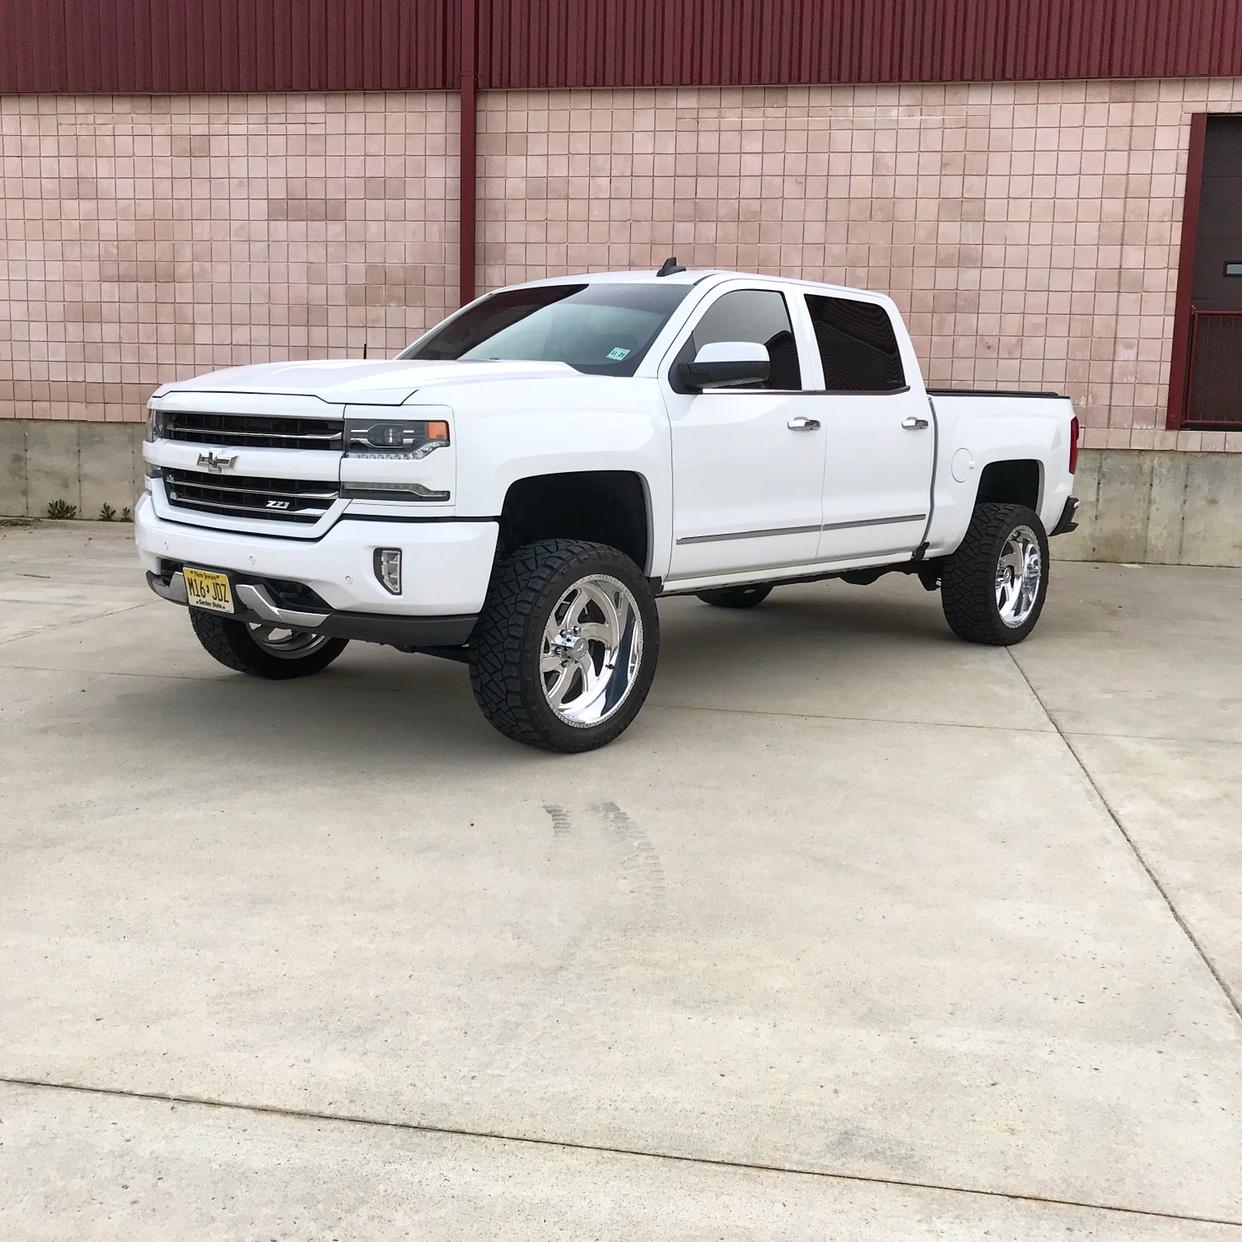 Trying to decide between 4 different lifts, 2016 GMC Sierra, Zone 4.5, Zone 6.5, RC 5in, Fabtech ...